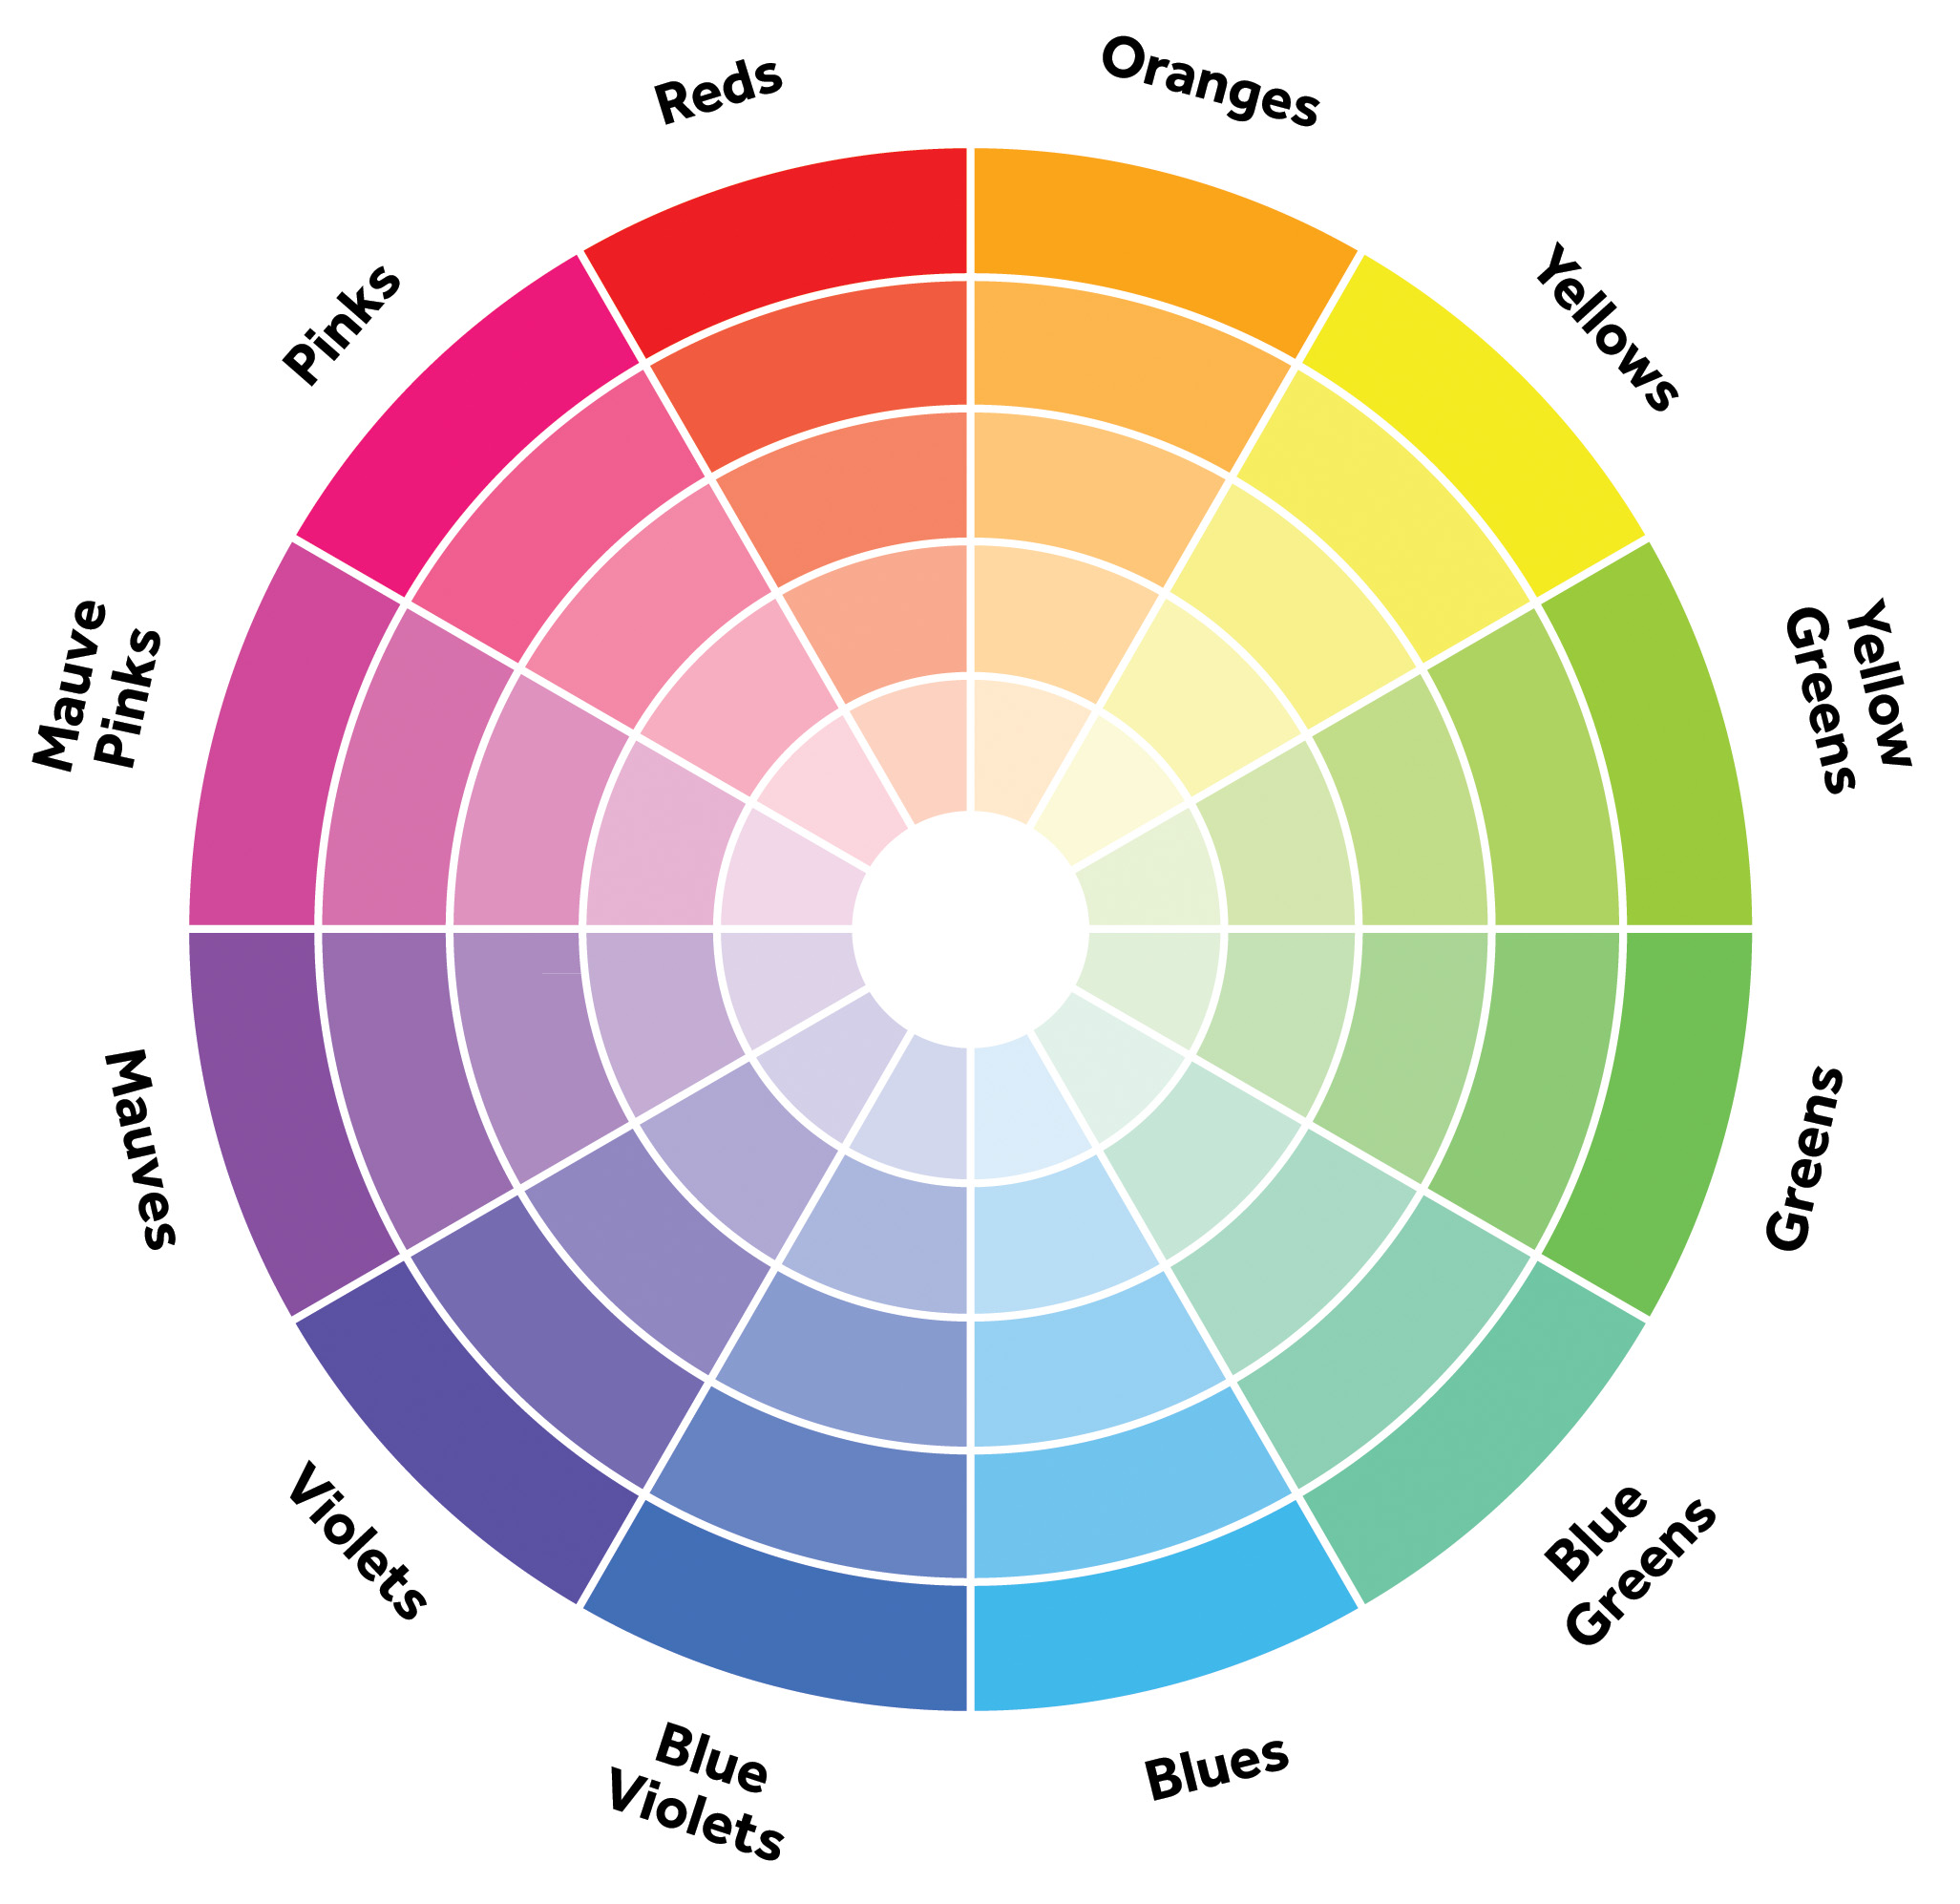 Use a color wheel to map contrasting colors for call-to-action buttons.